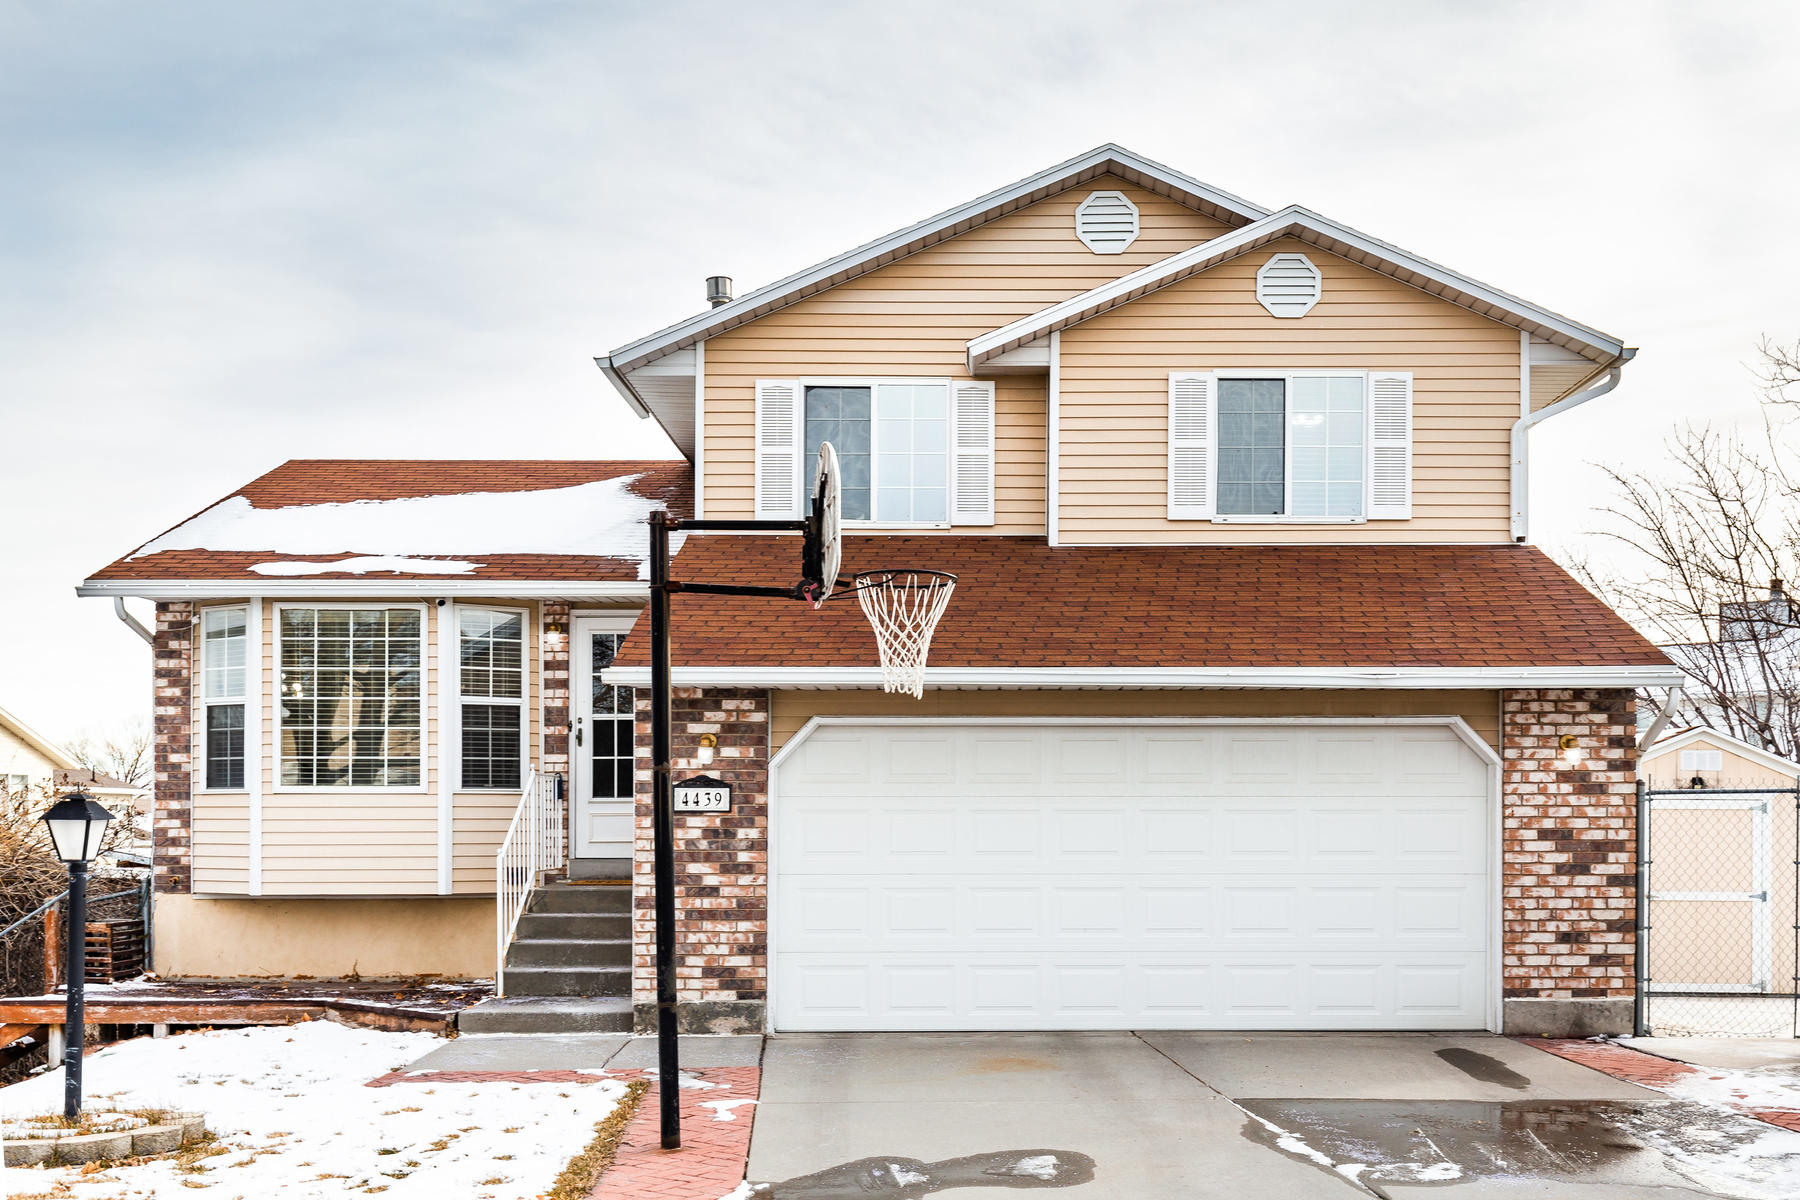 Single Family Homes for Active at Home Sweet Home 4439 S Heathercrest Cir West Valley City, Utah 84120 United States